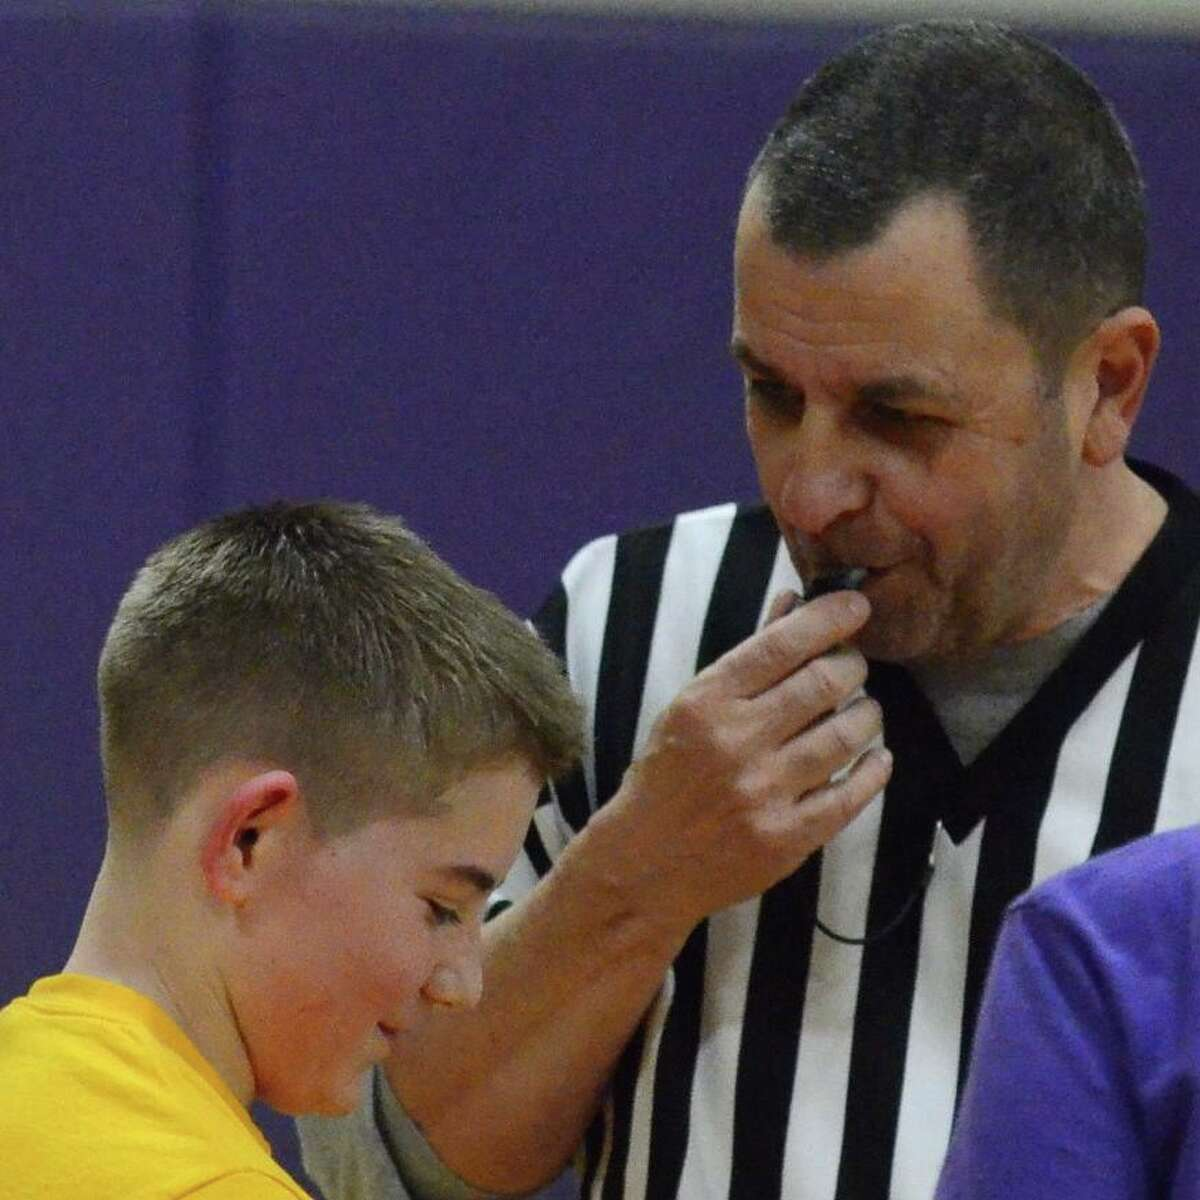 """Lewis """"Lou"""" Paternoster, who served as a referee in North Branford, Conn., stands with Matthew Vitkovsky during a 2014 basketball game. """"I could tell by the look on both of their faces Lou had just finished telling Matthew something funny,"""" Matthew's mom, Maureen Vitkovsky, said. """"No matter what happened, what you needed ... he would always be there to help pick up the pieces and help get everybody back on their feet again,"""" Betty Jo Paternoster, his wife of 36 years, said. """"If he wasn't right there, he was gonna be there as soon as possible"""" But Nov. 4, the day Lou Paternoster suffered a stroke, was probably the first time he didn't show up, she said. He died Nov. 6. But since then, Lou Paternoster's family has been inundated with messages from a community in mourning, from people who knew him through sports, or town politics, or his decades-long career in sales. It's left Betty Jo Paternoster - who might be the only person who spells his name """"Lew"""" - floored. She uses the phrase """"community Lou"""" to describe the striking public figure her late husband cut. """"I'm soakin' in all the good things that I'm hearing from other people about him, because those things mean the world,"""" she said. """"The 'community Lou' right now is shining like a golden star."""""""